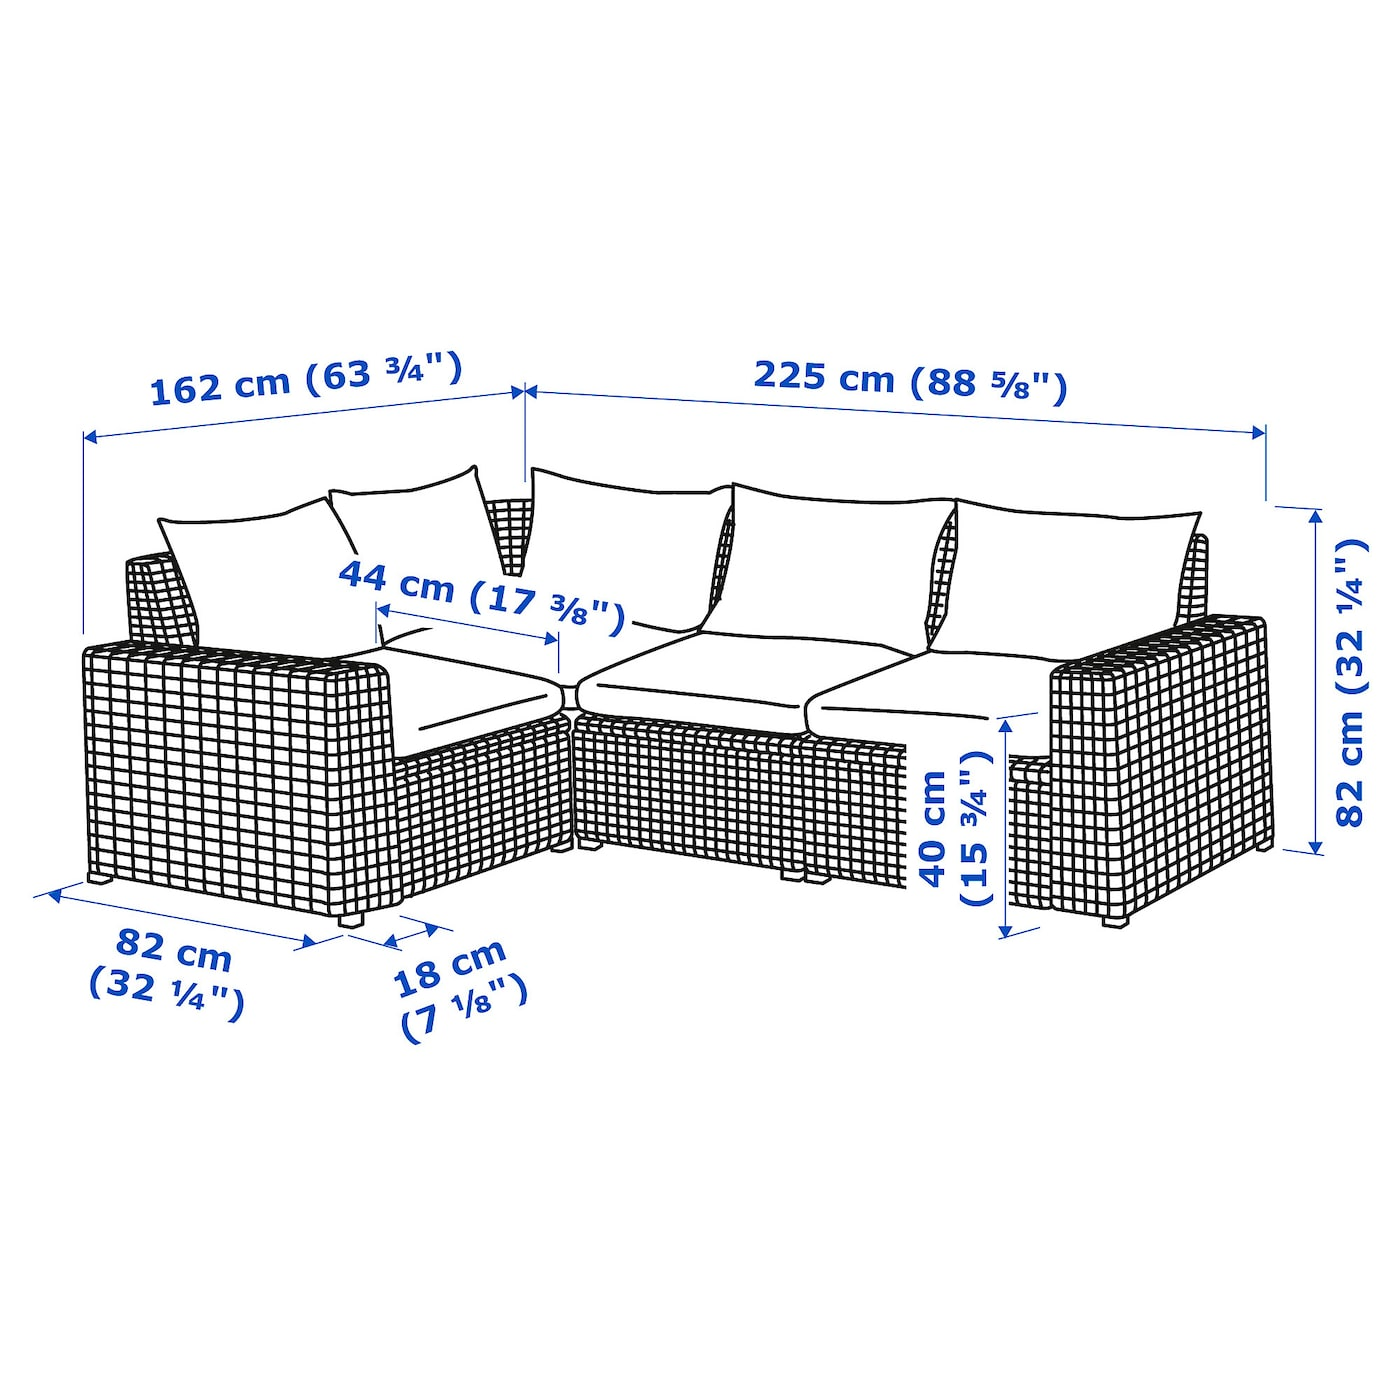 IKEA SOLLERÖN modular corner sofa 3-seat, outdoor Practical storage space under the seat.